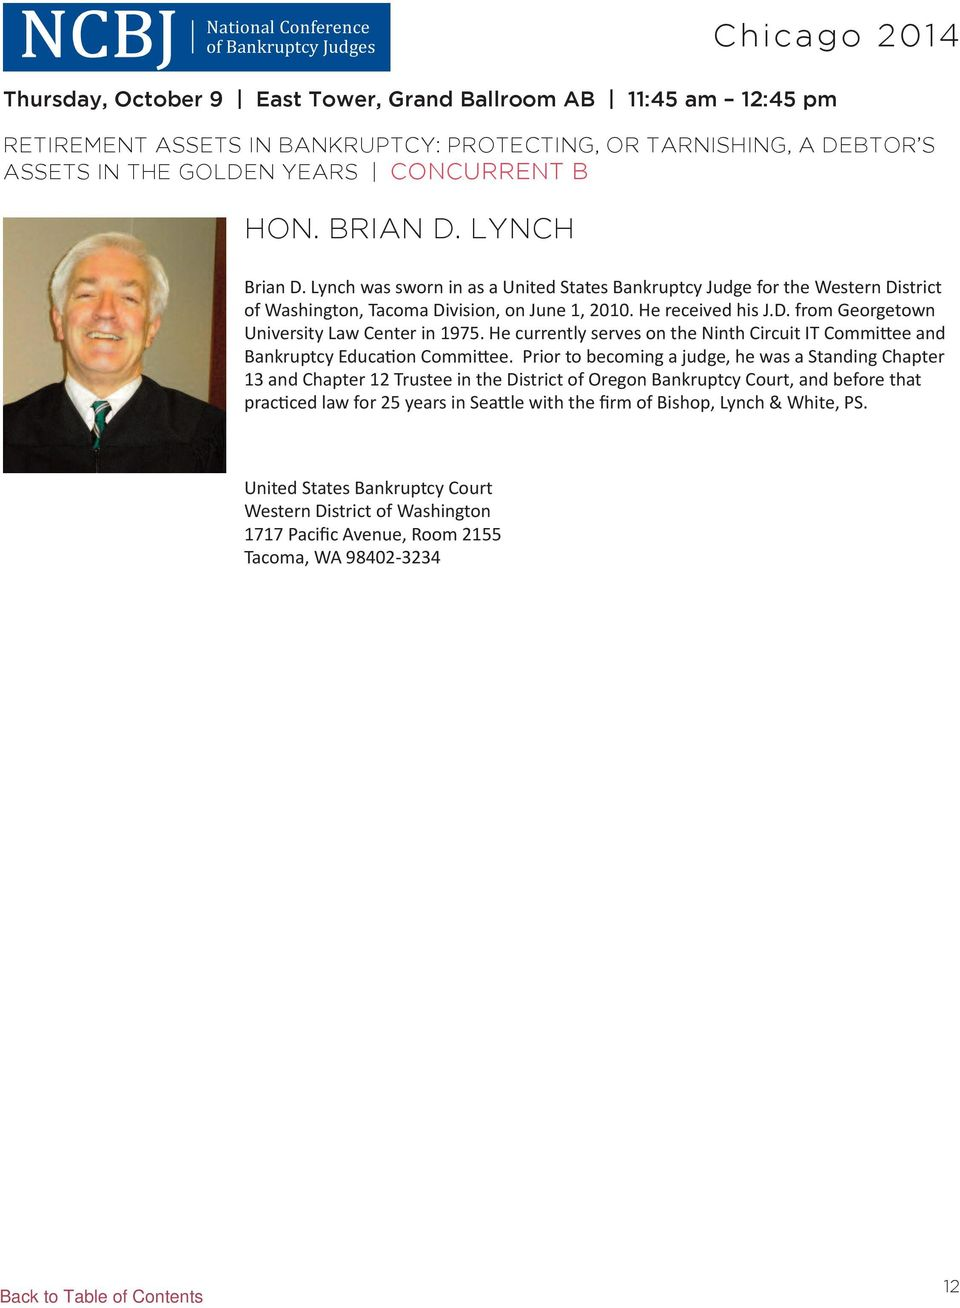 Lynch was sworn in as a united states Bankruptcy Judge for the Western district of Washington, Tacoma division, on June 1, 2010. He received his J.d. from georgetown university Law Center in 1975.